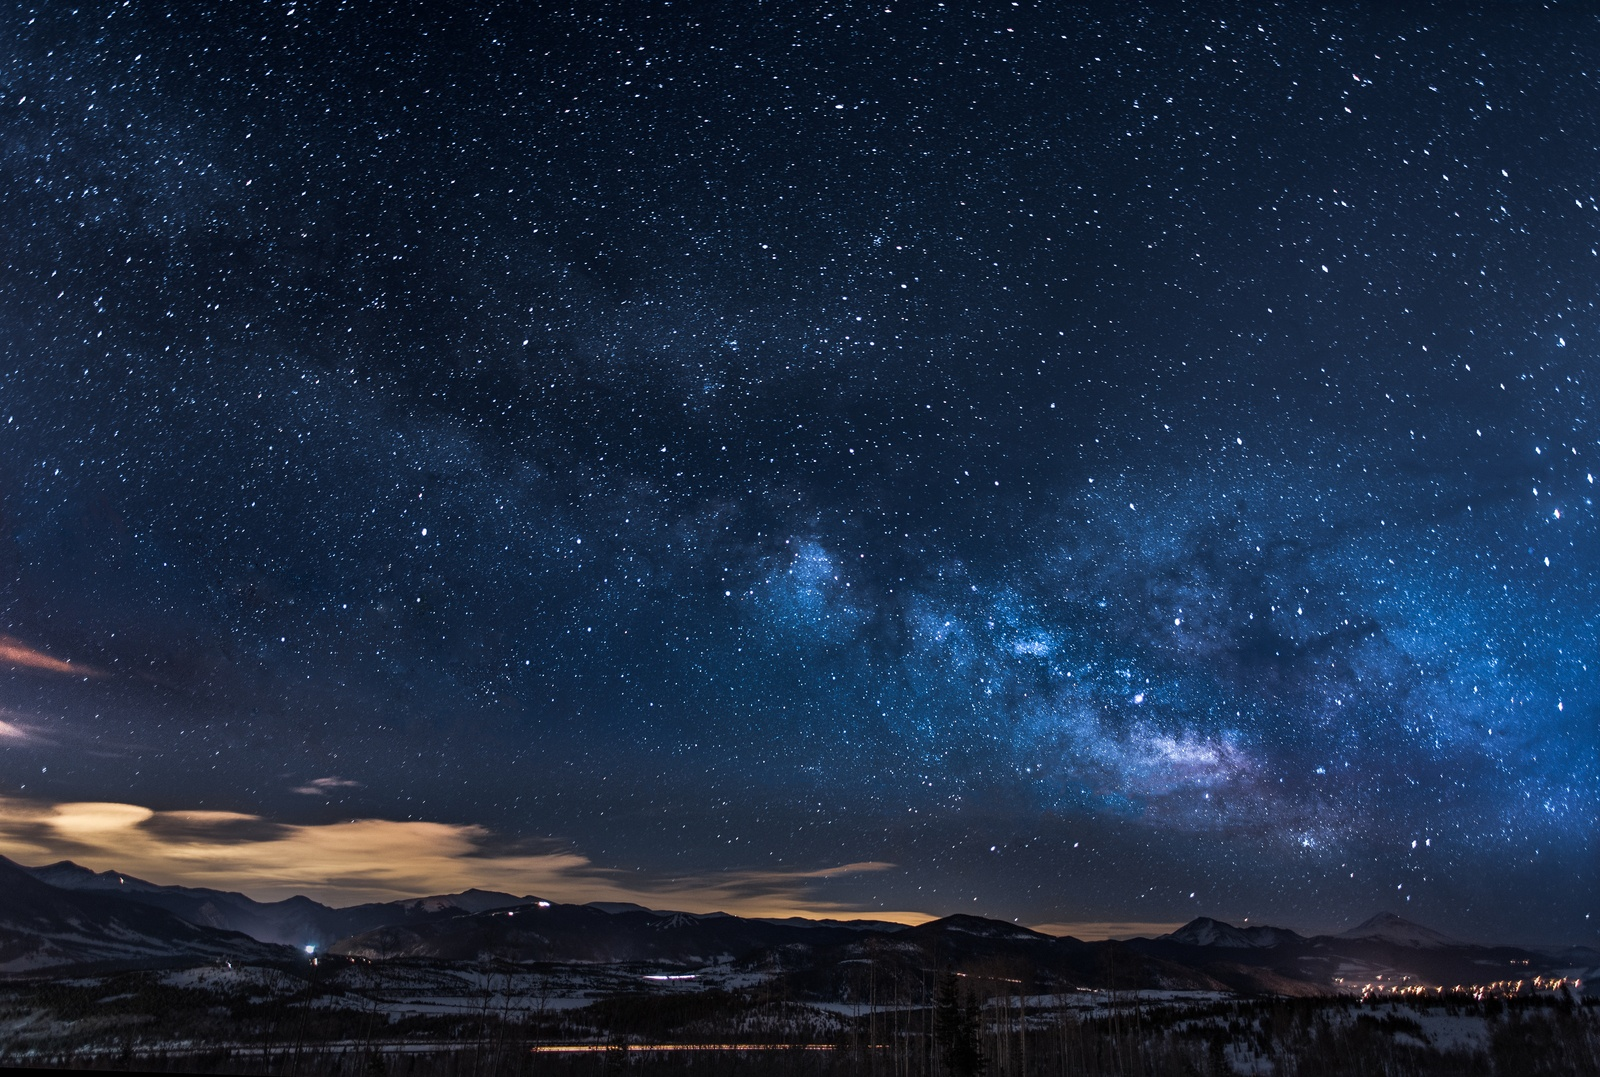 Mountains with Trees Under White Star At Night by Nathan-Anderson